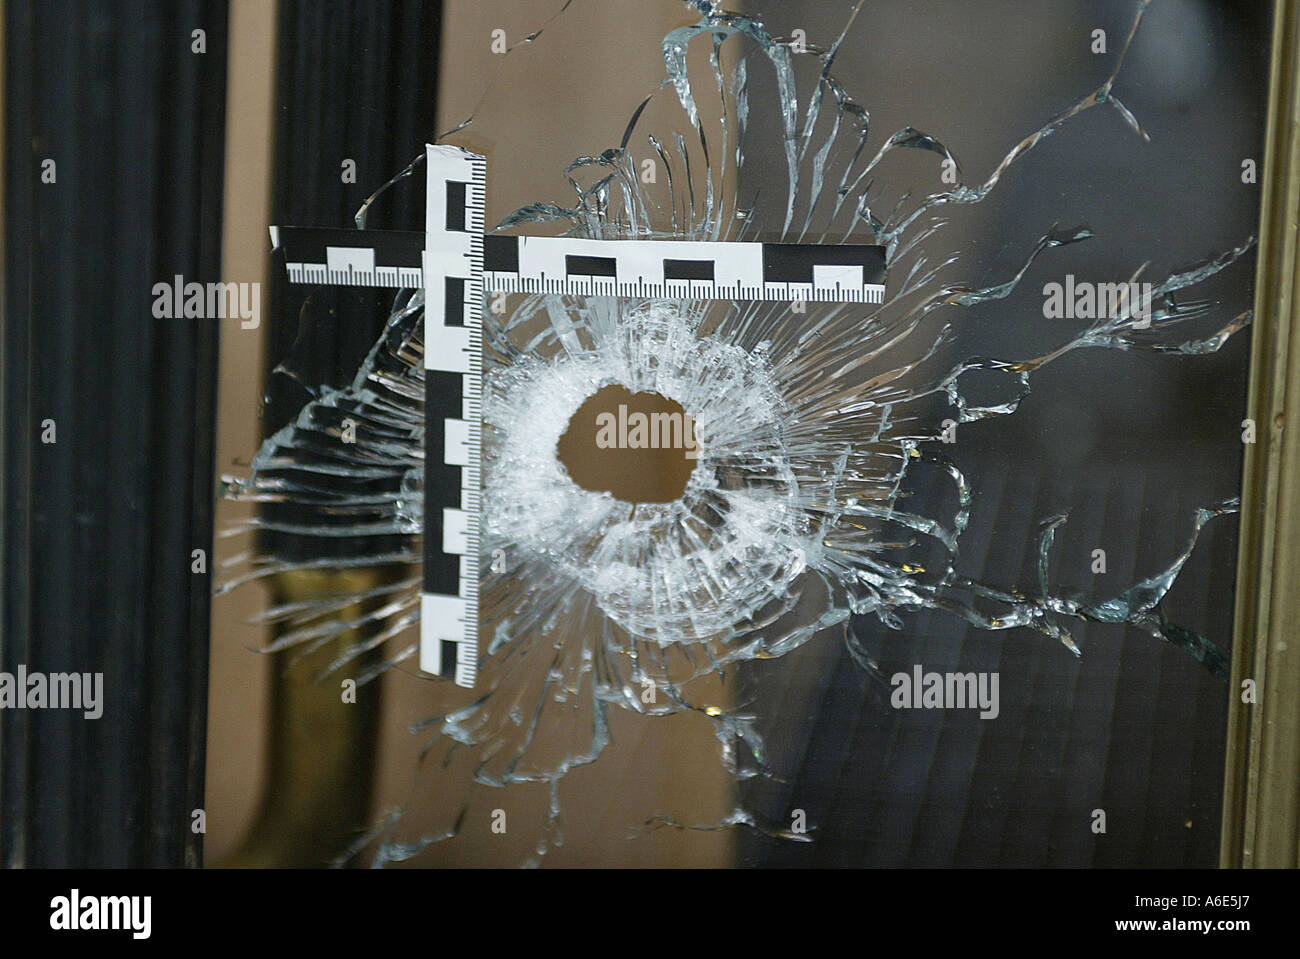 Mannheim, DEU, 17.04.2005, bullet hole in windowpane after murder, securing of evidence - Stock Image